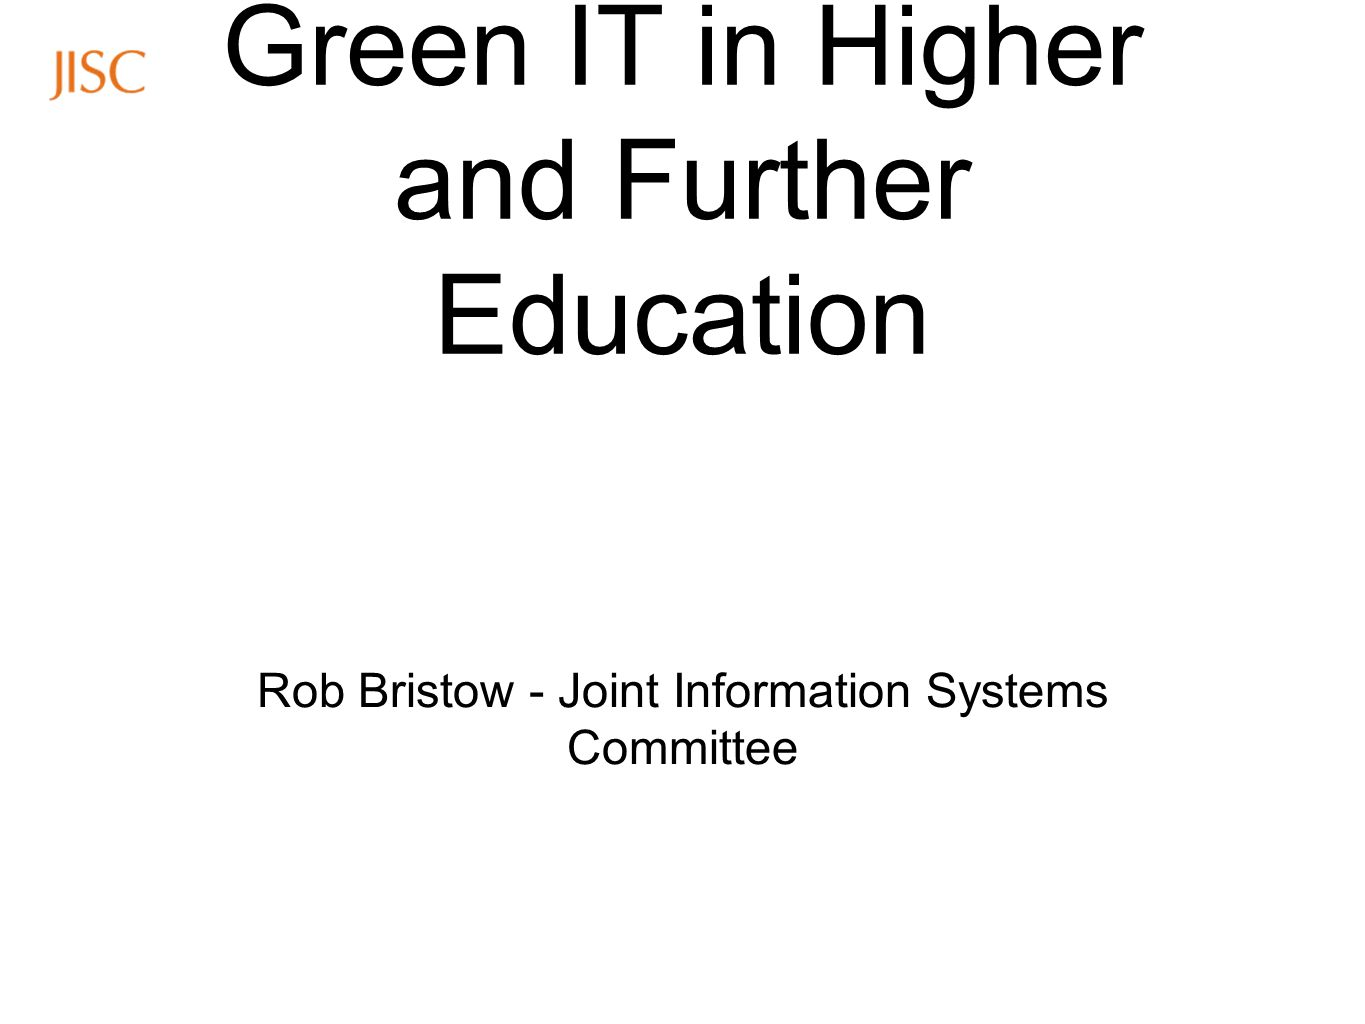 Green IT in Higher and Further Education Rob Bristow - Joint Information Systems Committee